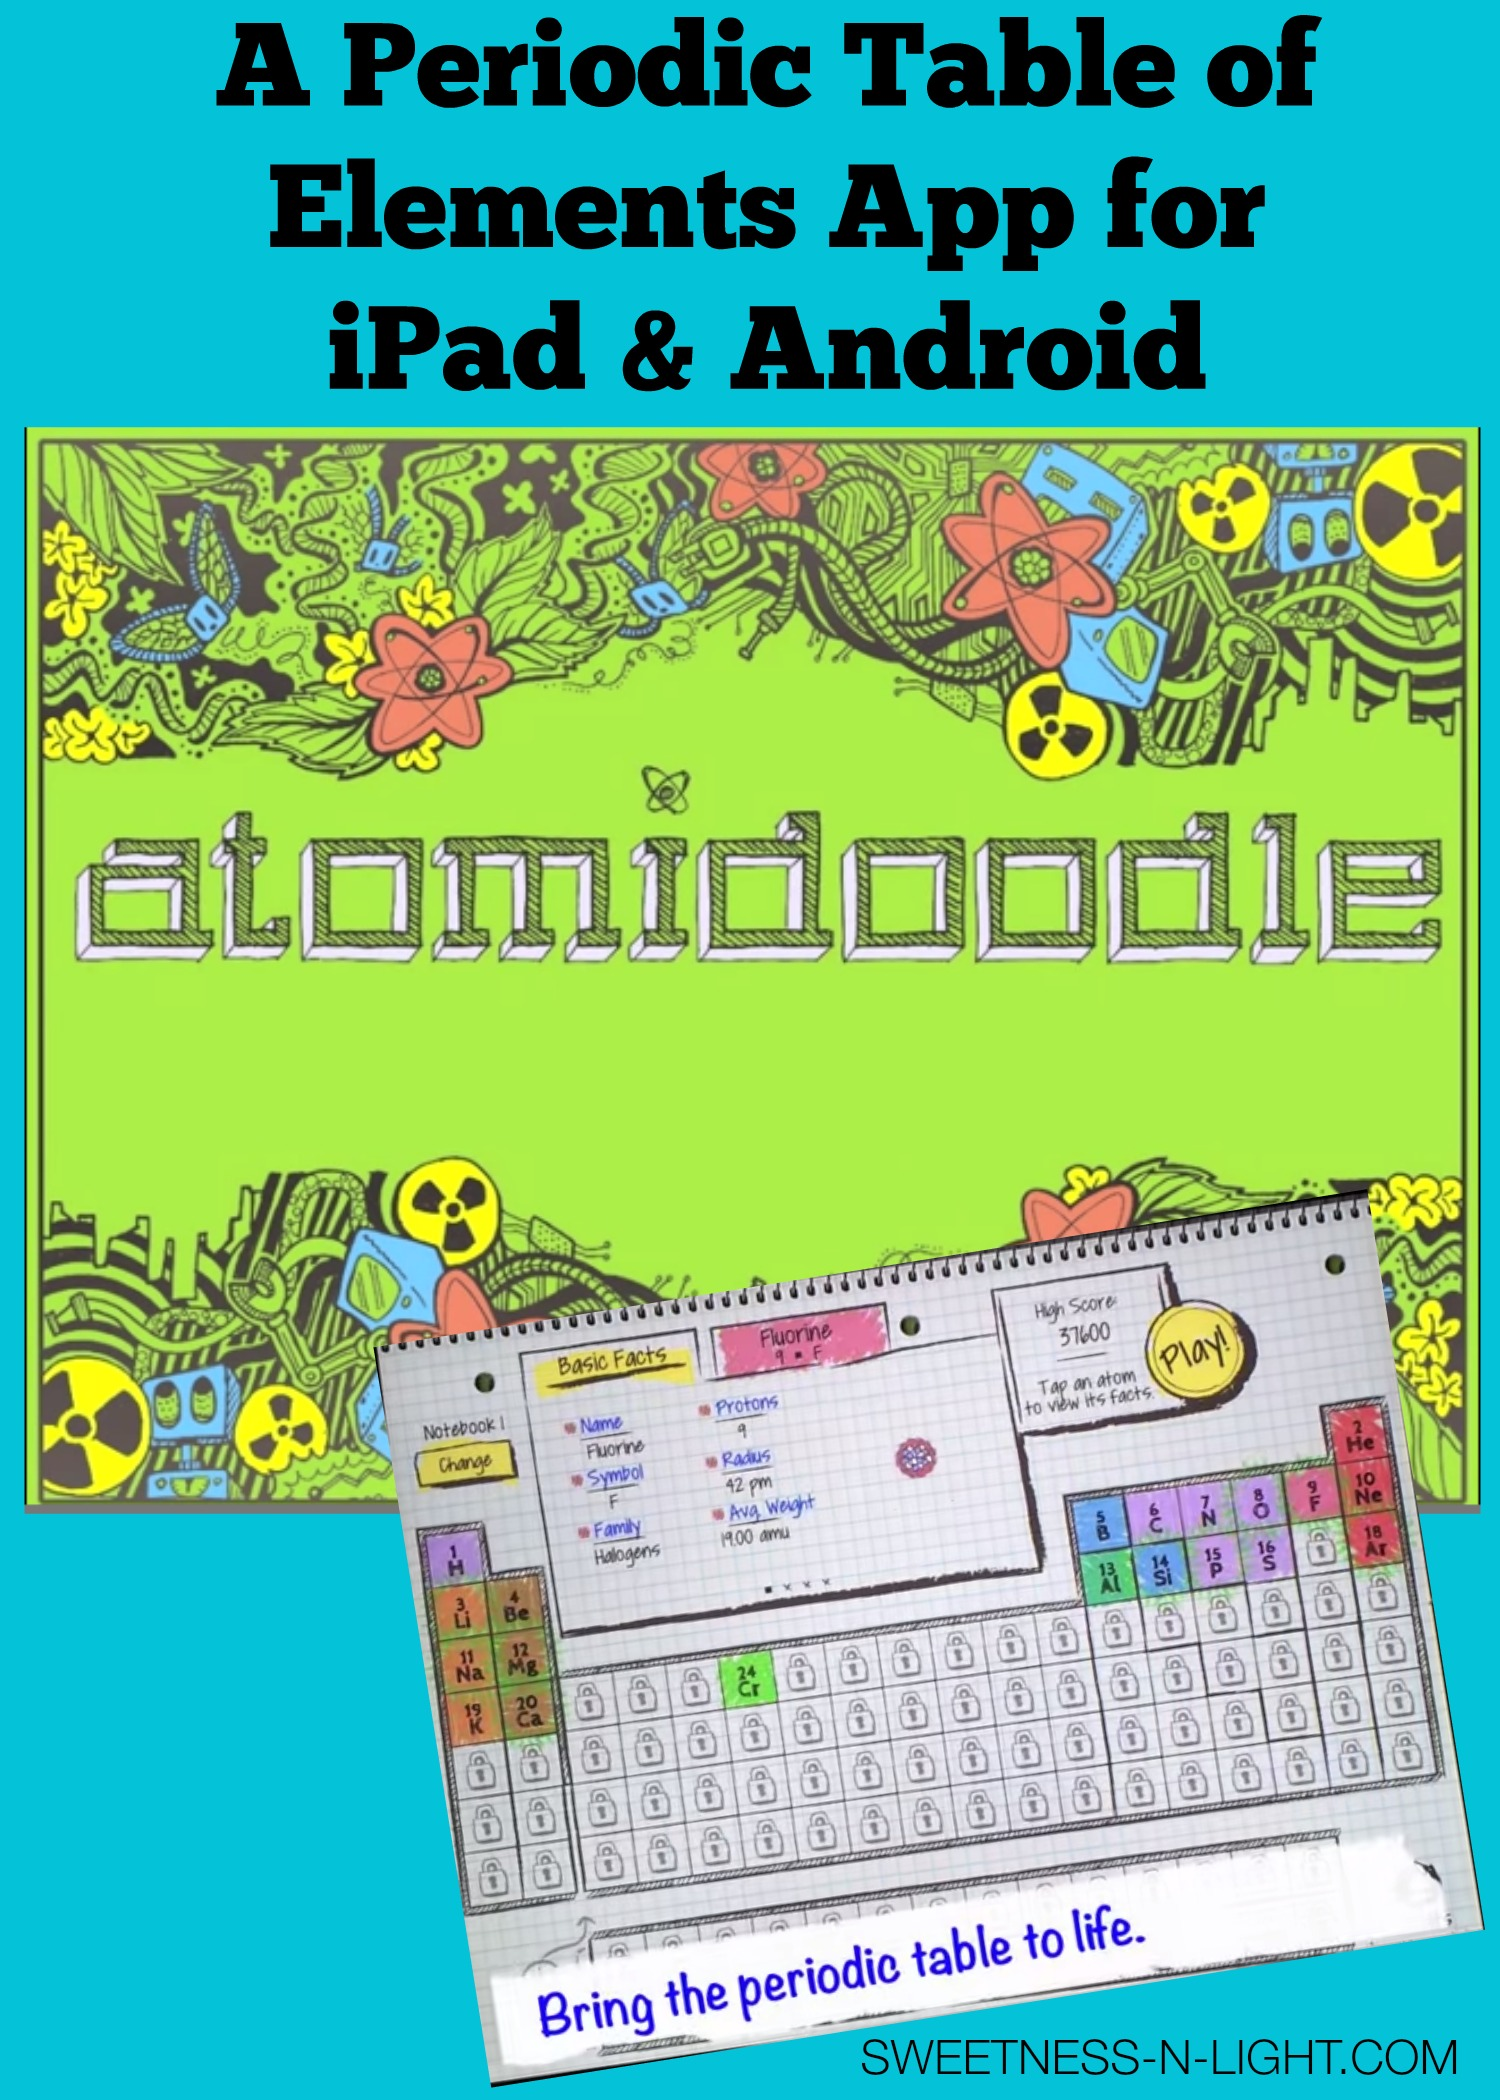 Atomidoodle periodic table of elements app sweetness n light atomidoodle periodic table of elements app urtaz Choice Image